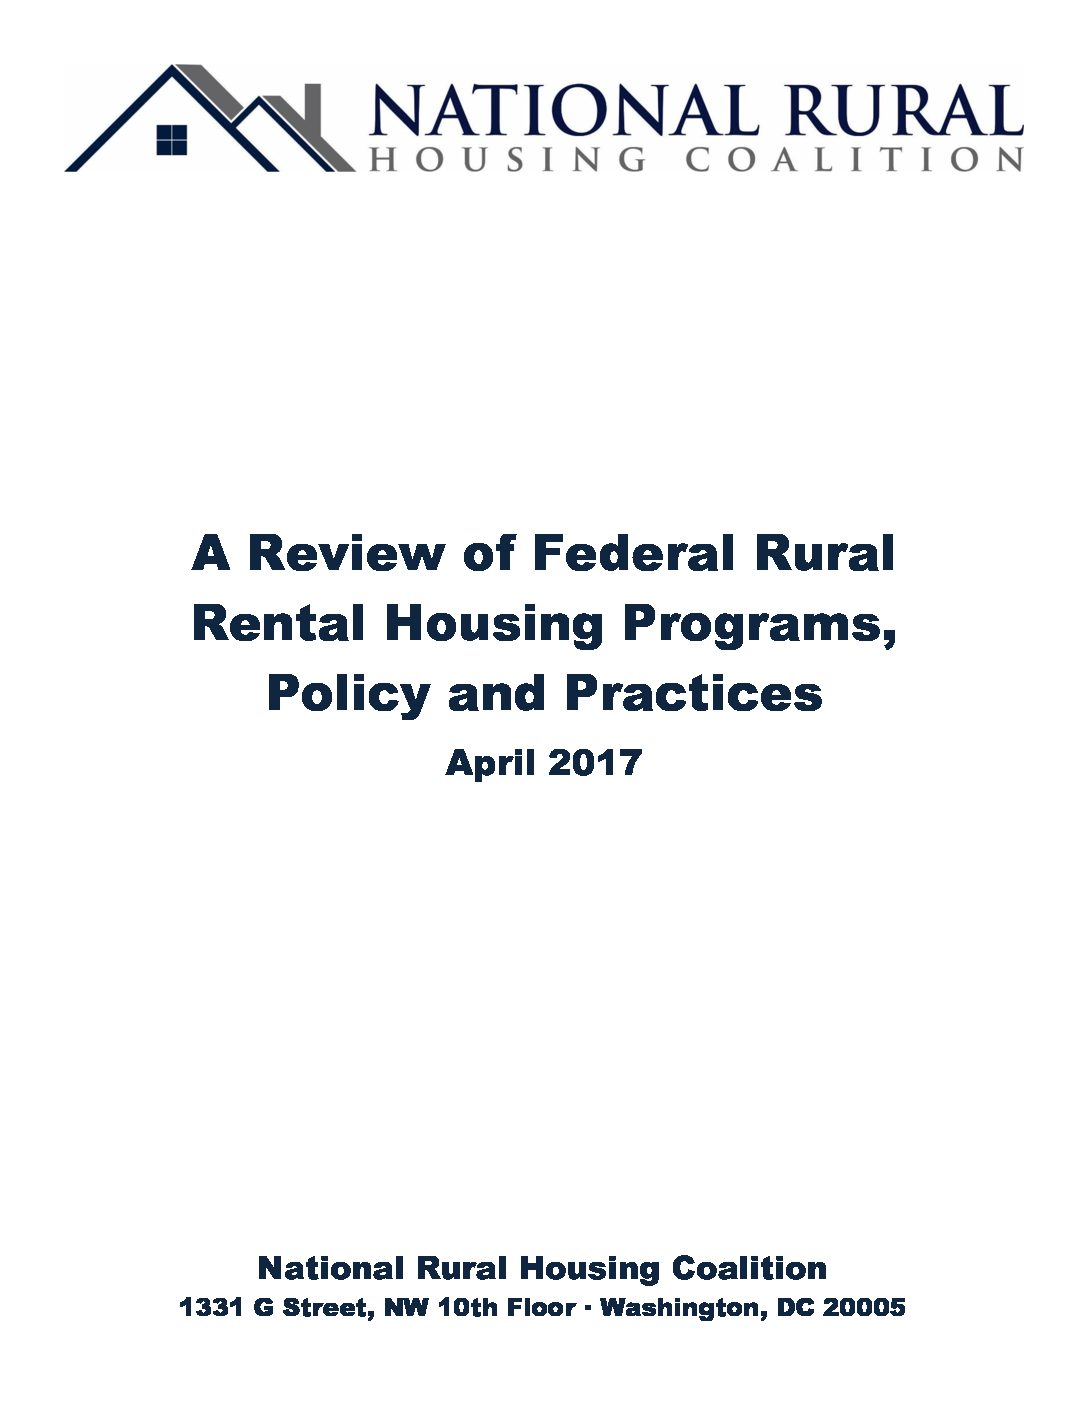 A Review of Federal Rural Rental Housing Programs, Policy, and Practices